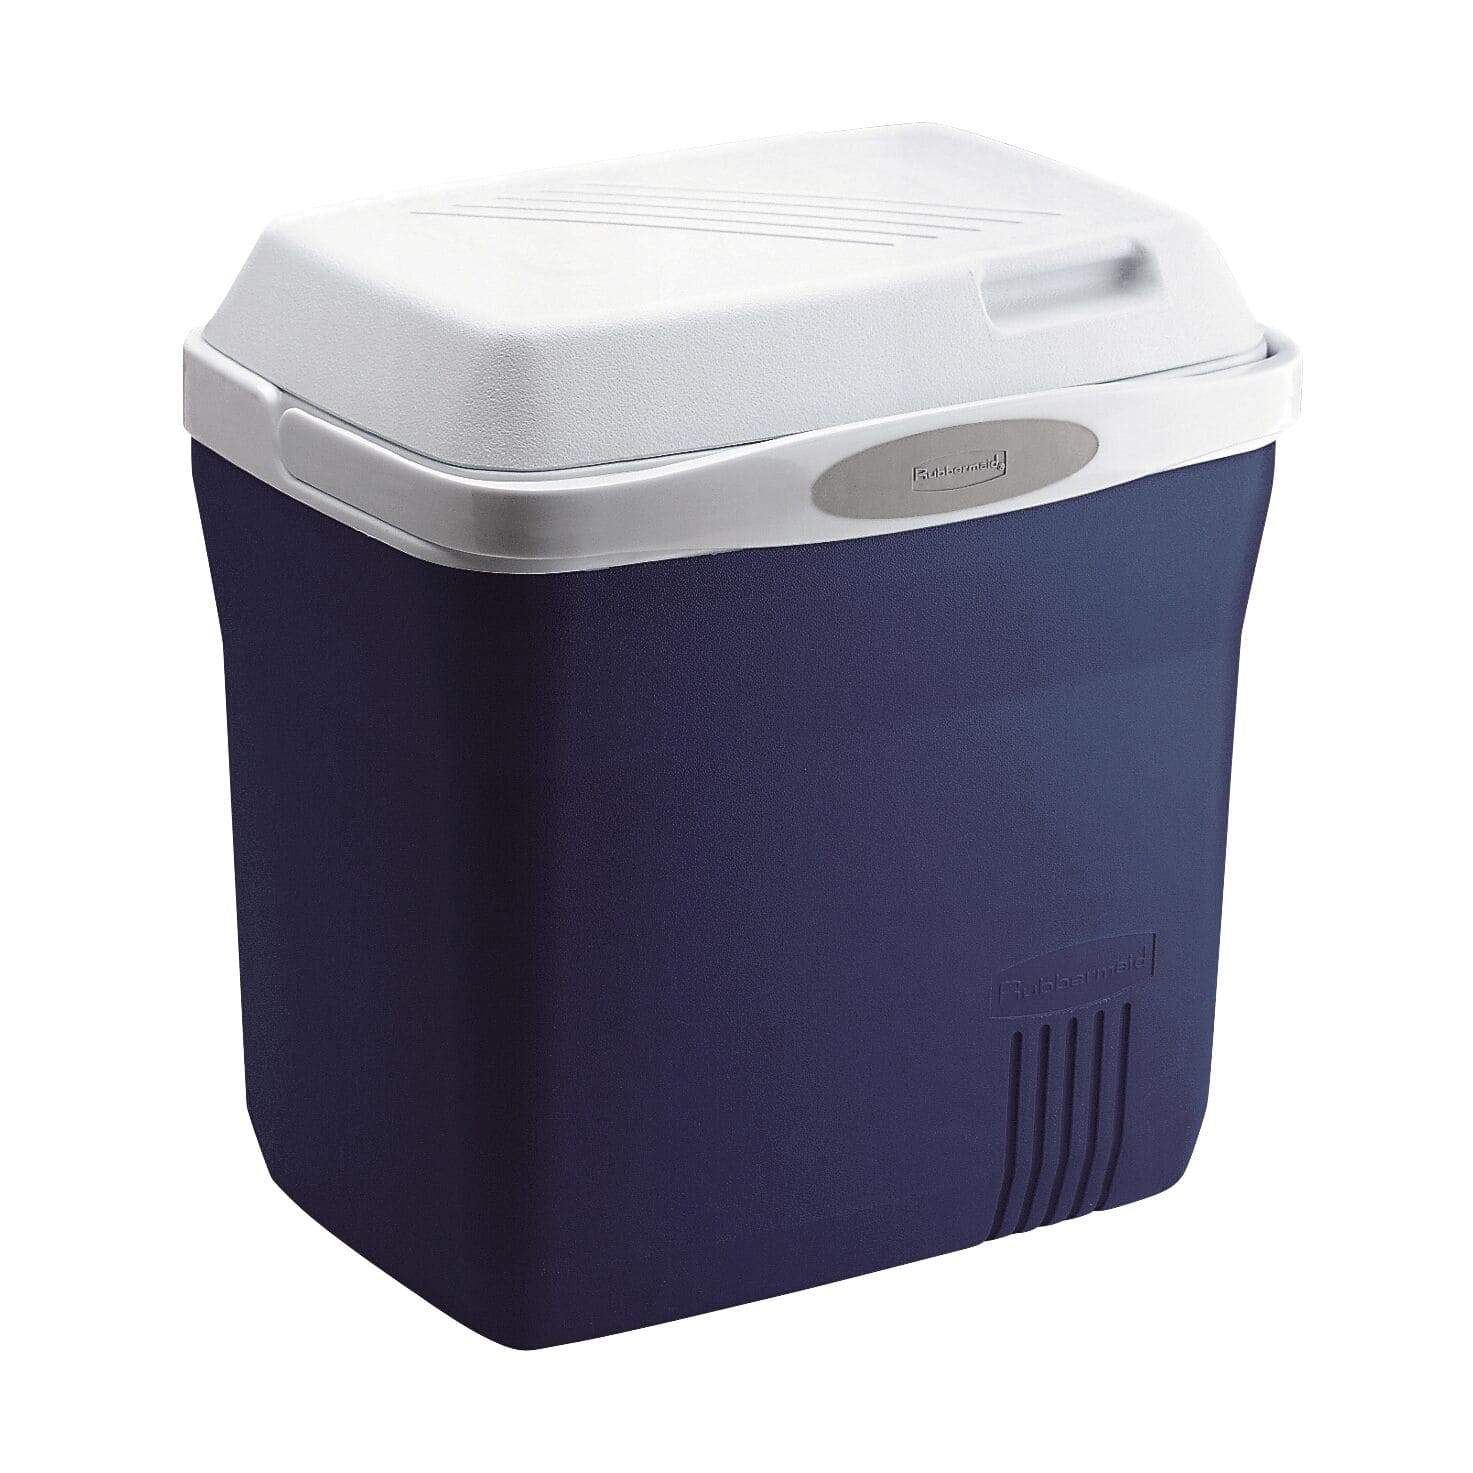 20-Quart Rubbermaid Cooler (Blue)  w/ Free Store Pickup $9.98